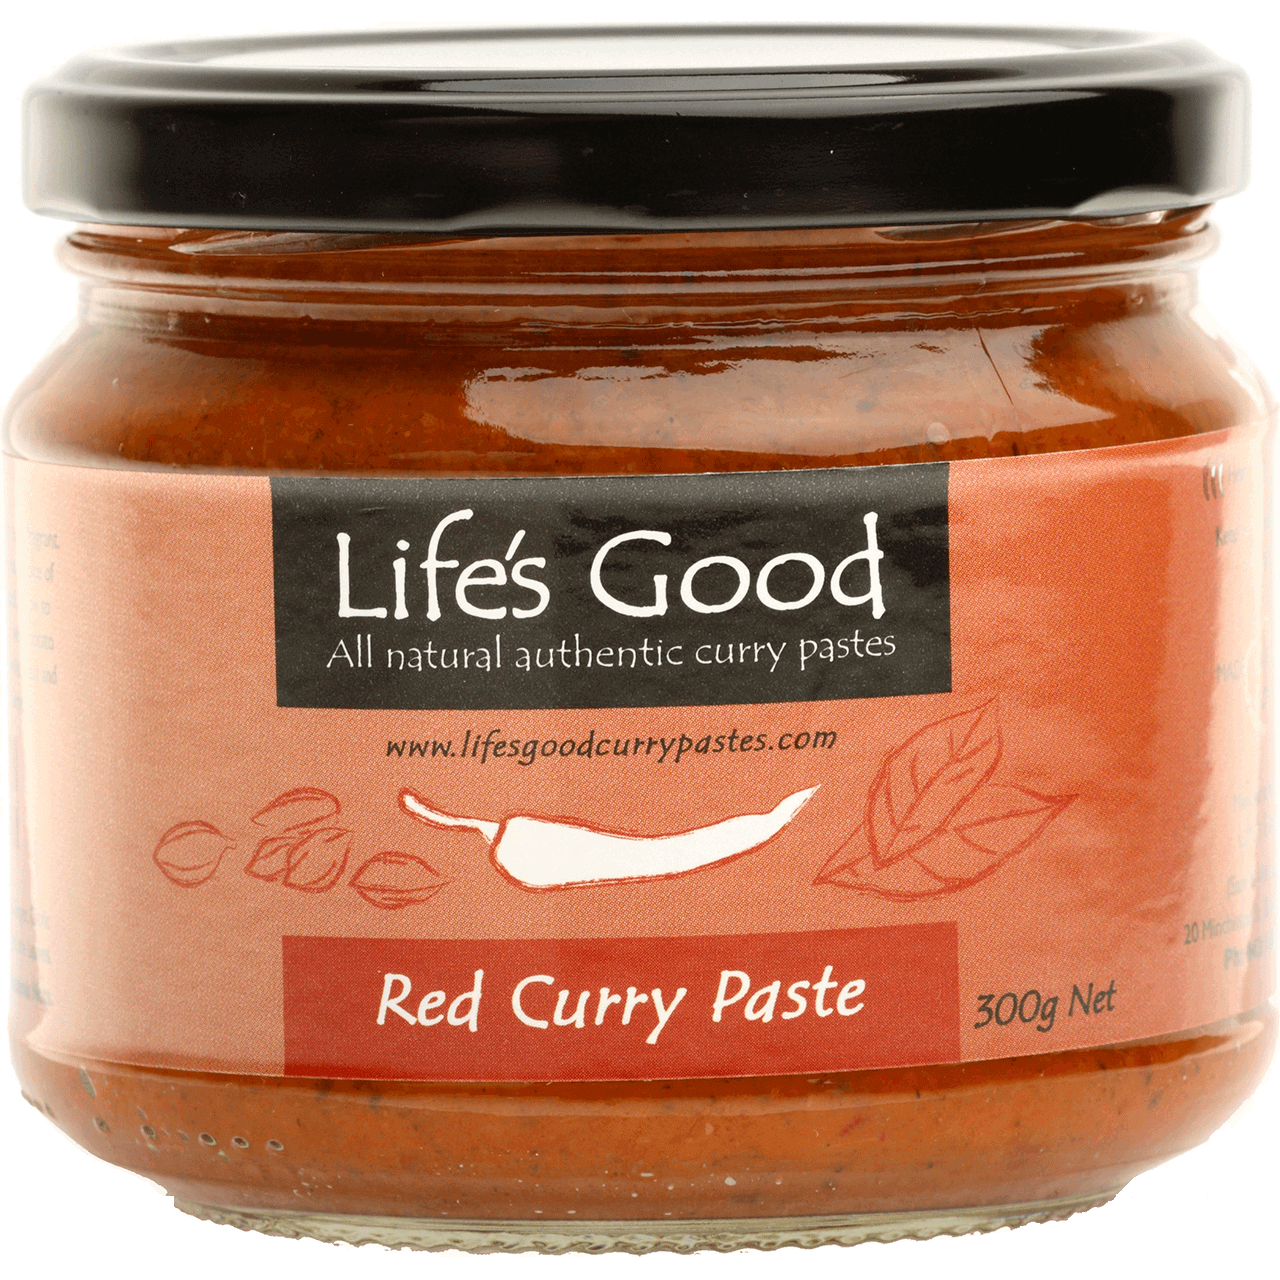 Life's Good Red Curry Paste